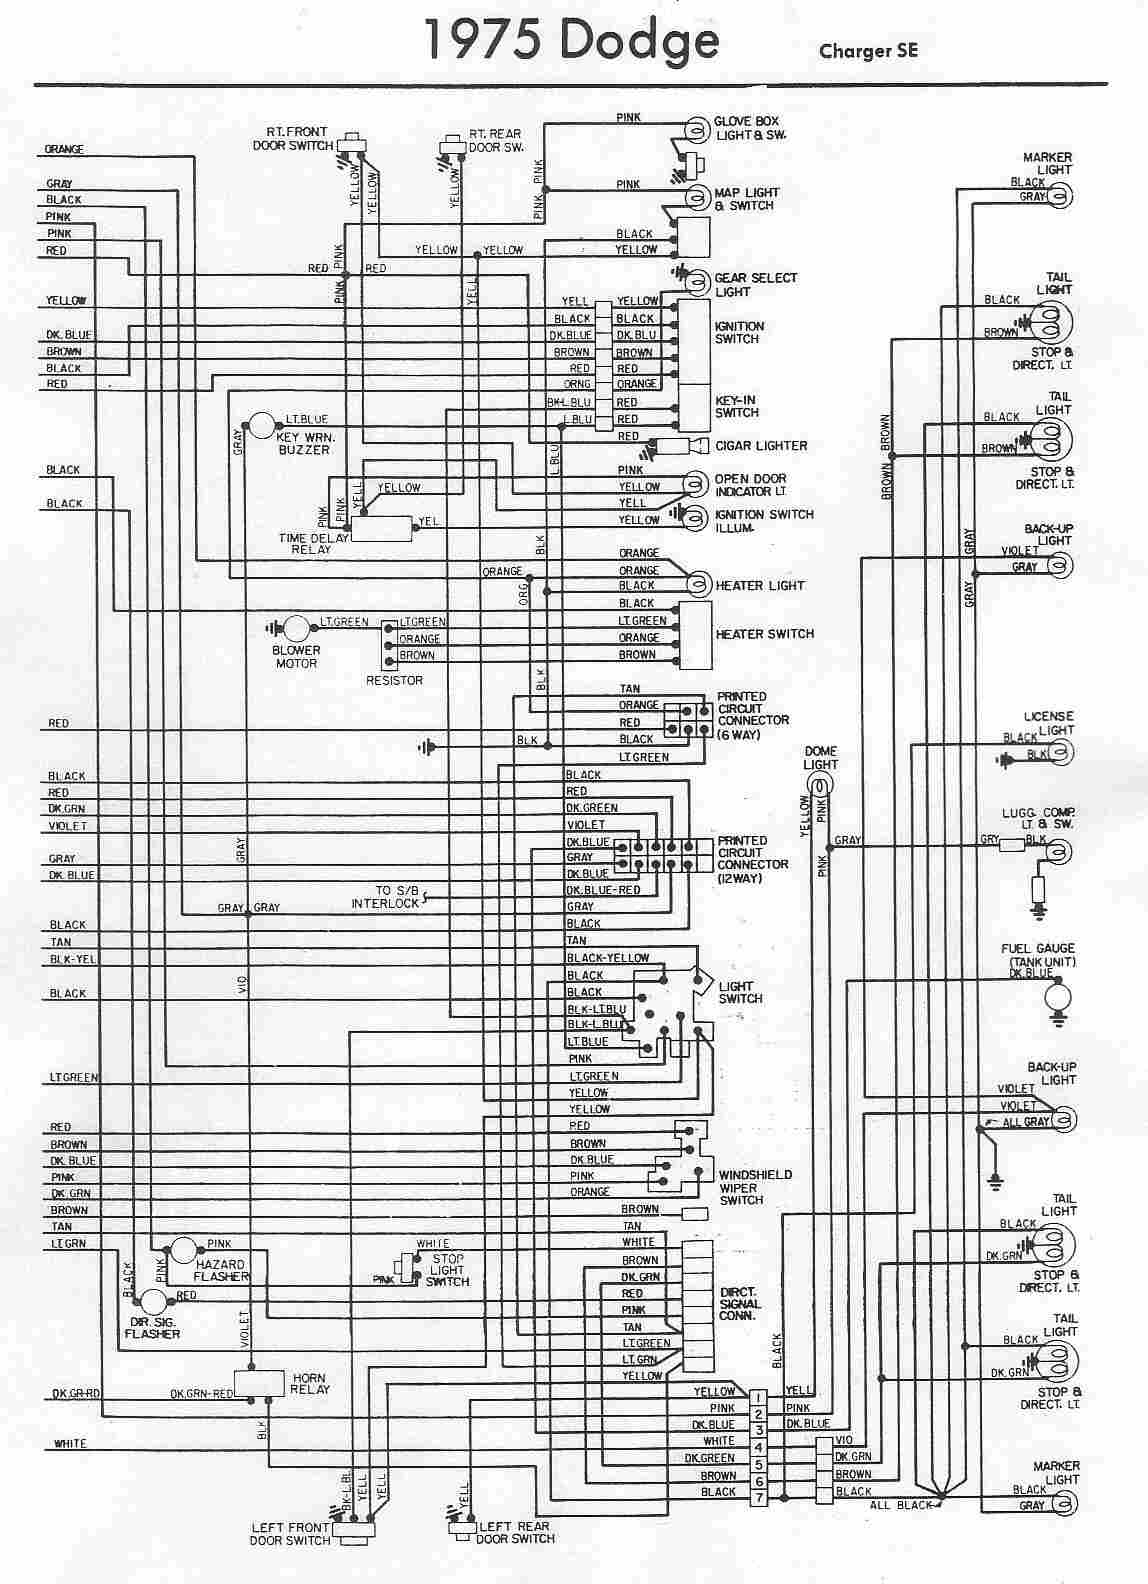 electrical wiring diagram of 1975 dodge charger?t=1508404771 dodge car manuals, wiring diagrams pdf & fault codes 2007 dodge charger wiring diagram at eliteediting.co